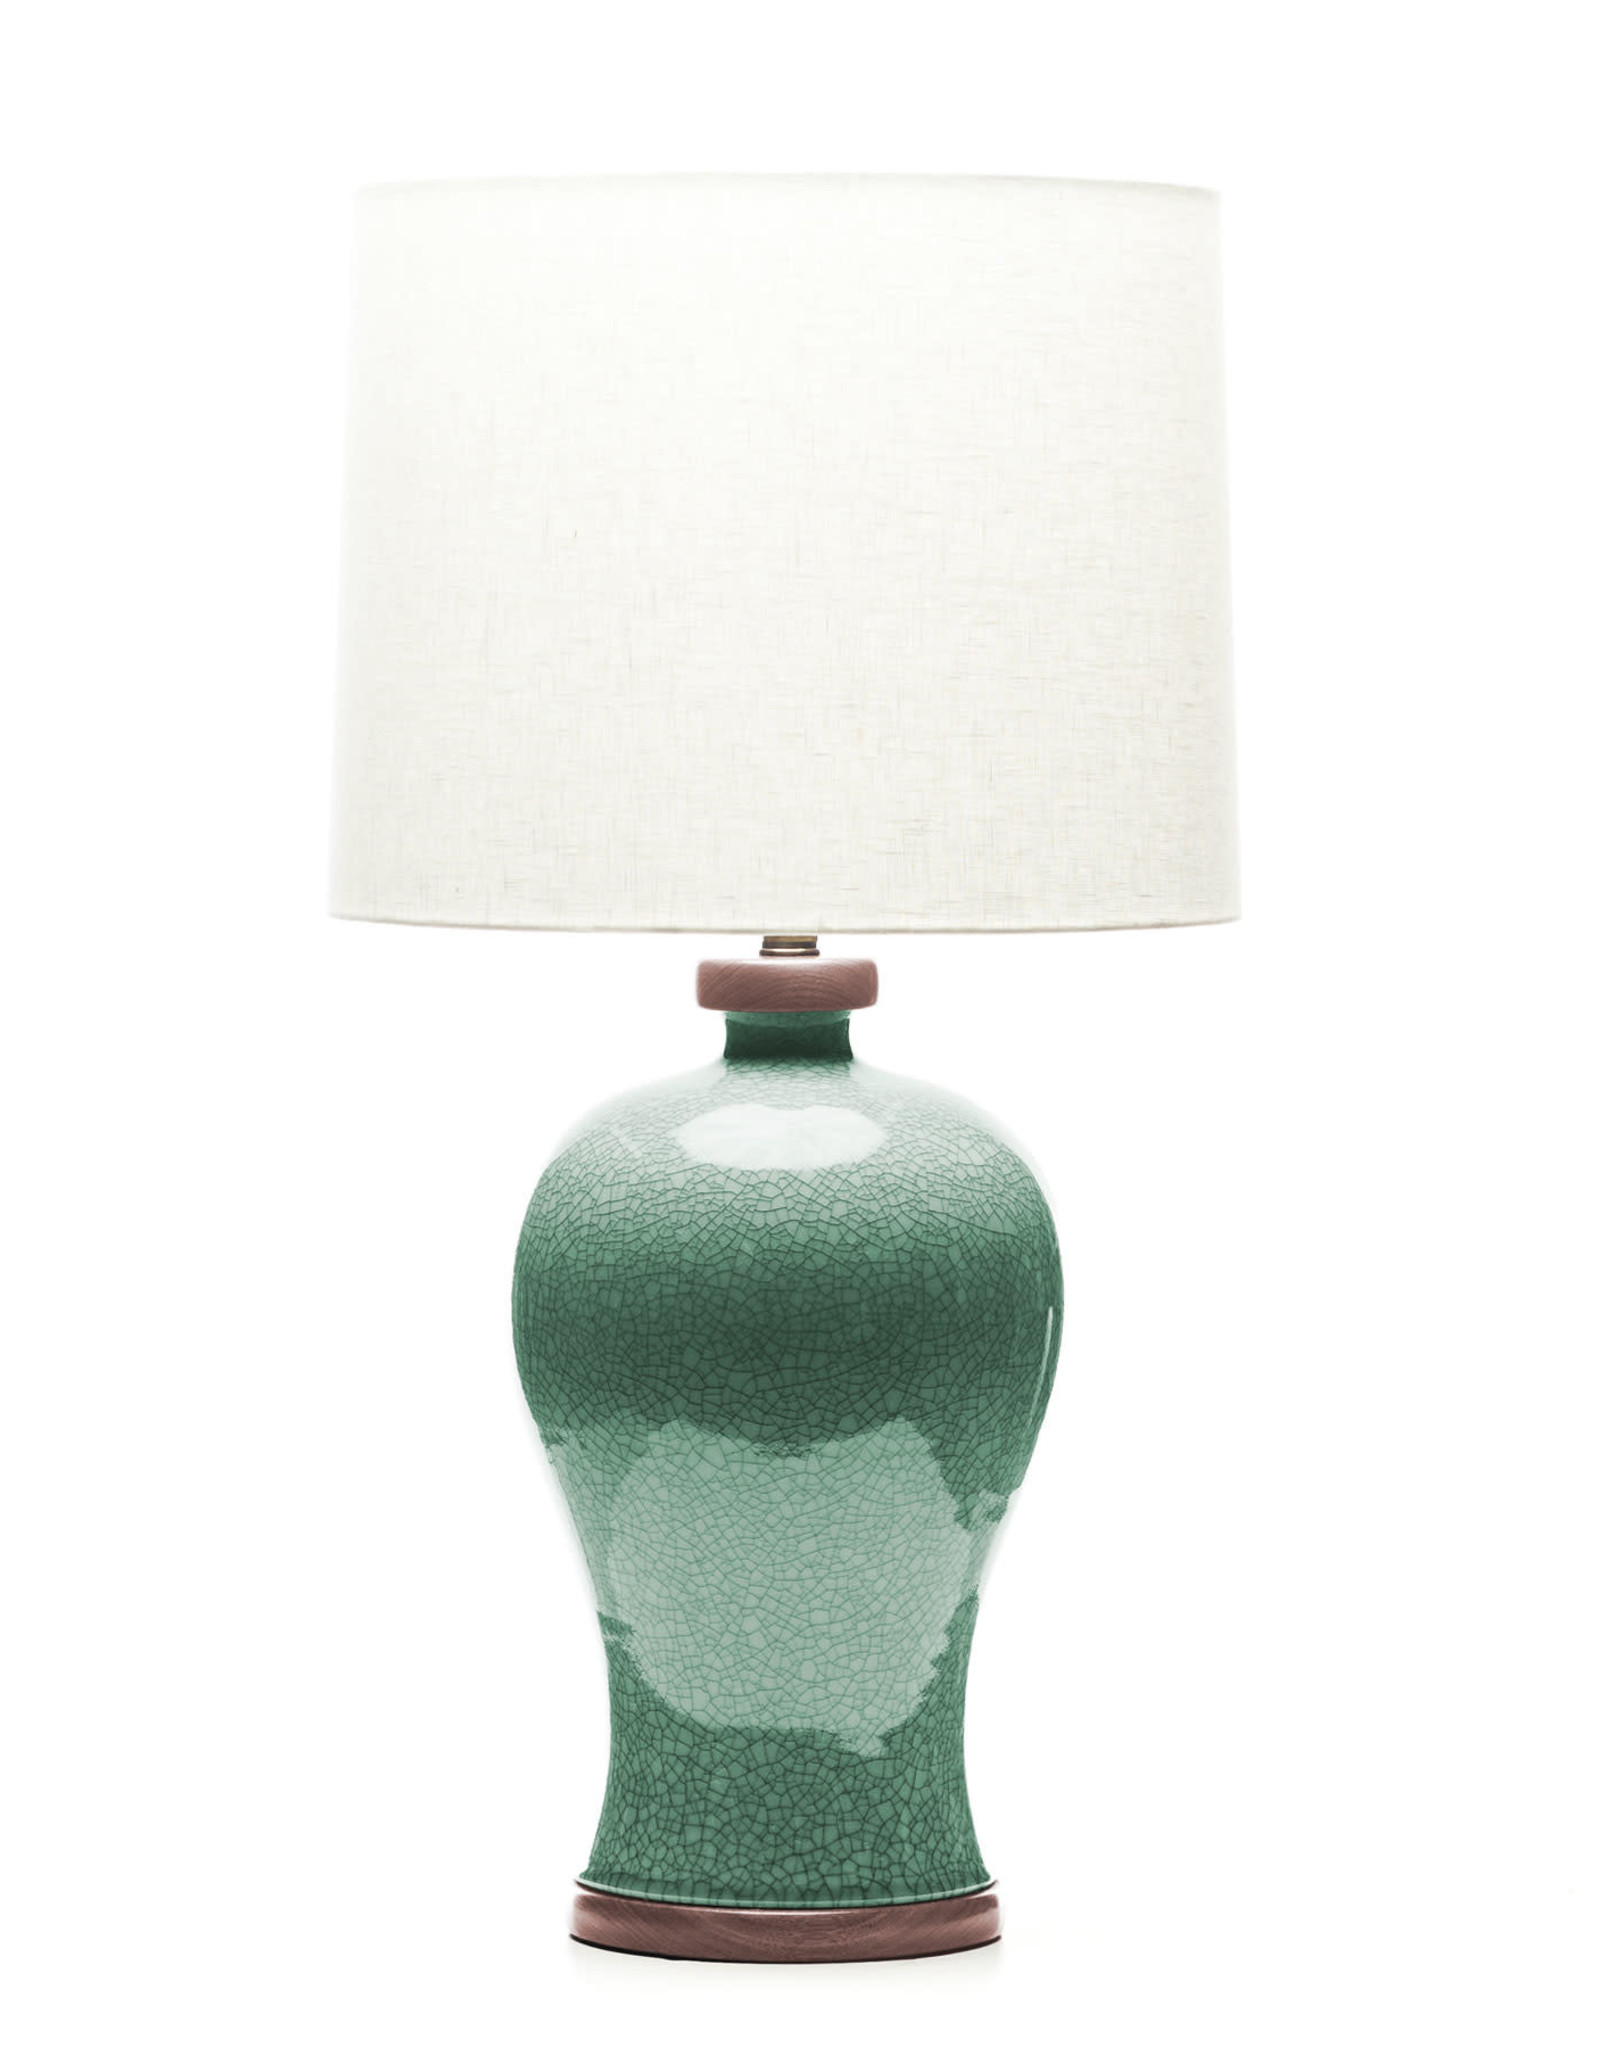 Lawrence & Scott Dashiell Table Lamp in Aquamarine Crackle with Sapele Base